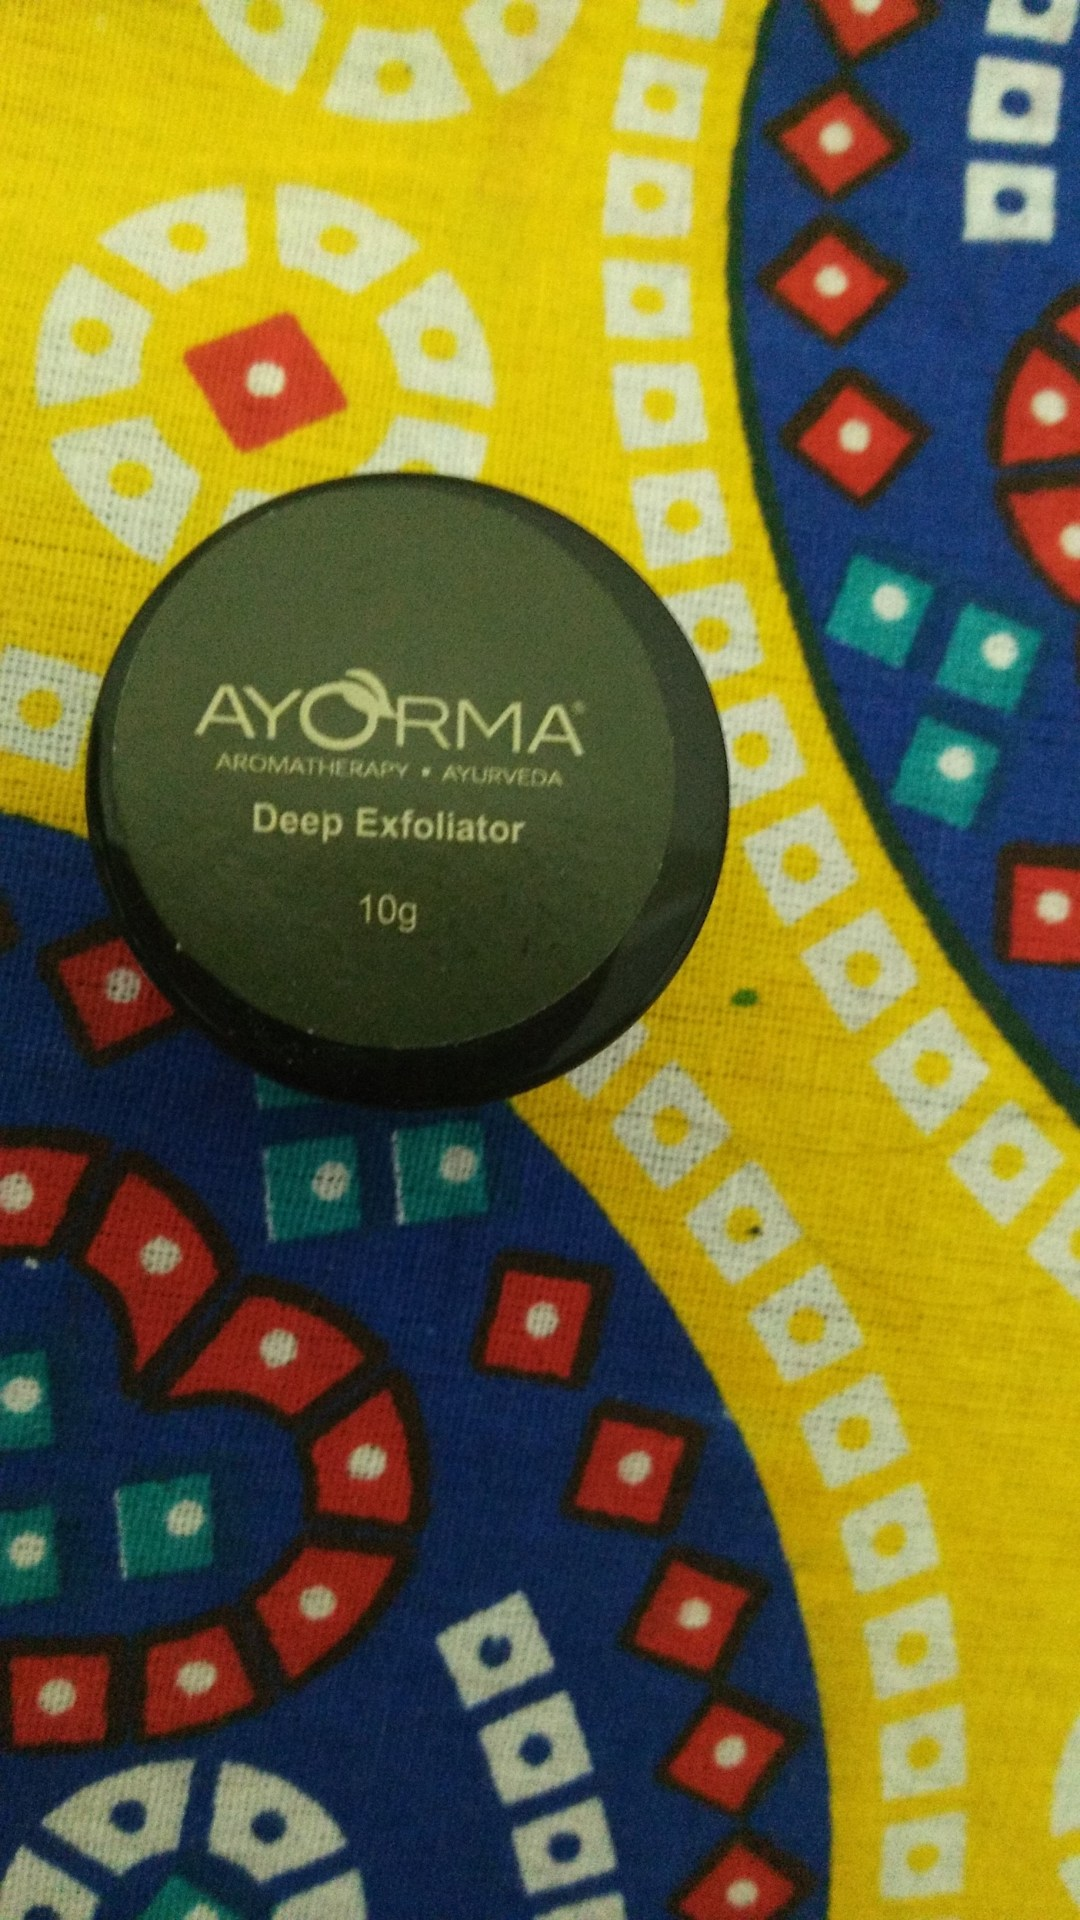 Ayorma Radiance Glow Deep Exfoliator in Fab Bag April 2017